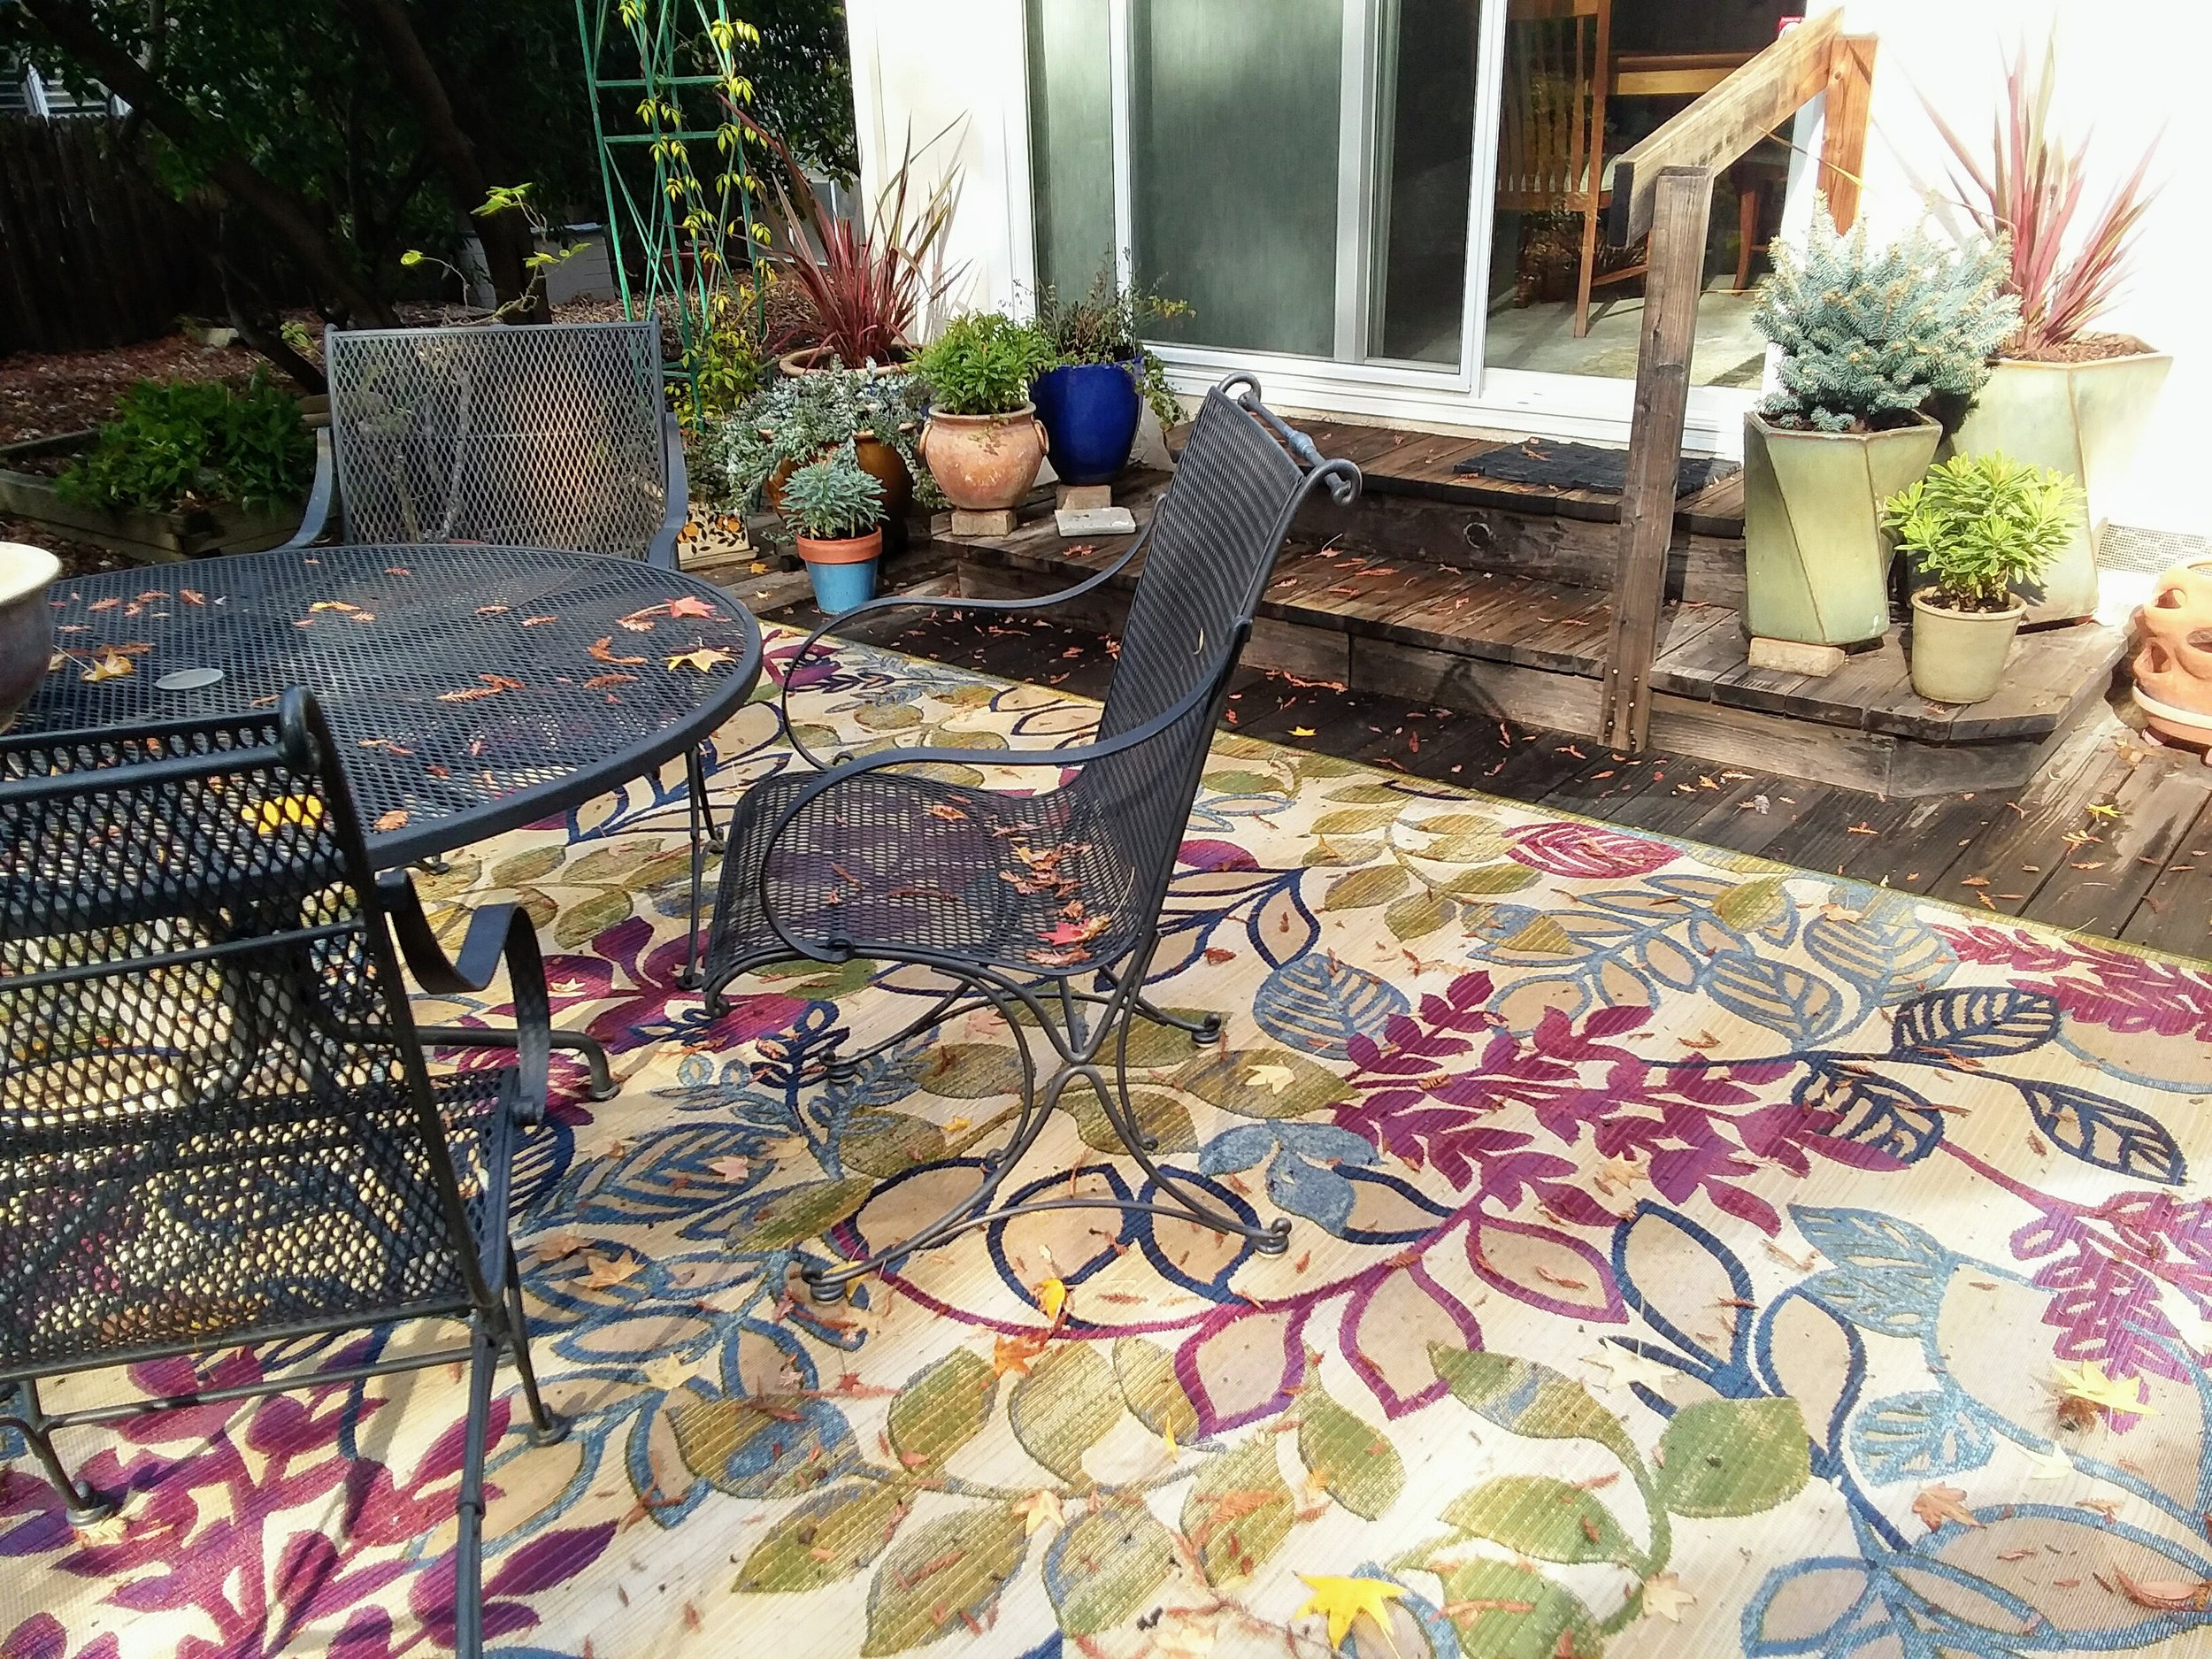 M'lou's back deck showing newly planted pots and area rug on Mon., Nov. 26, 2018-2.jpg